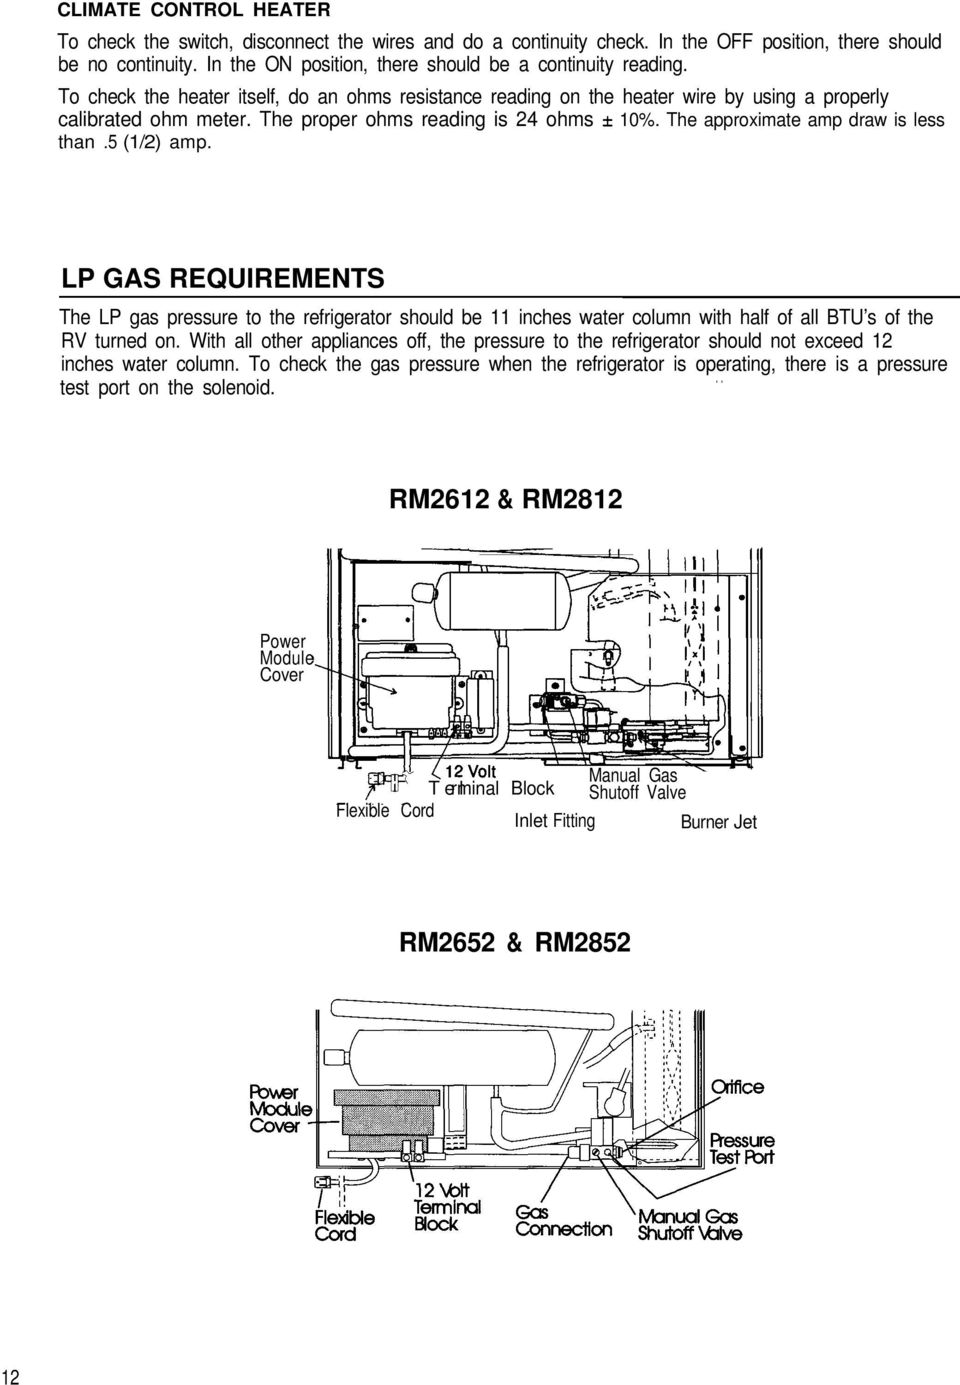 SERVICE TIPS. Dometic REFRIGERATORS. Models. OS1927 4/96 Copyright on dometic refrigerator dimensions, dometic thermostat wiring diagram, dometic ac wiring diagram, kipor generator wiring diagram, refrigerator schematic diagram, dometic refrigerator not cooling, dometic refrigerator break down, dometic refrigerator accessories, dometic refrigerator parts, dometic refrigerator switch, dometic refrigerator thermostat replacement, dometic rm2652 wiring diagram, dometic refrigerator fan, dometic refrigerator adjustment, dometic refrigerator cover, king dome wiring diagram, dometic refrigerator schematic, dometic refrigerator troubleshooting, dometic rv refrigerator, rv refrigerator diagram,